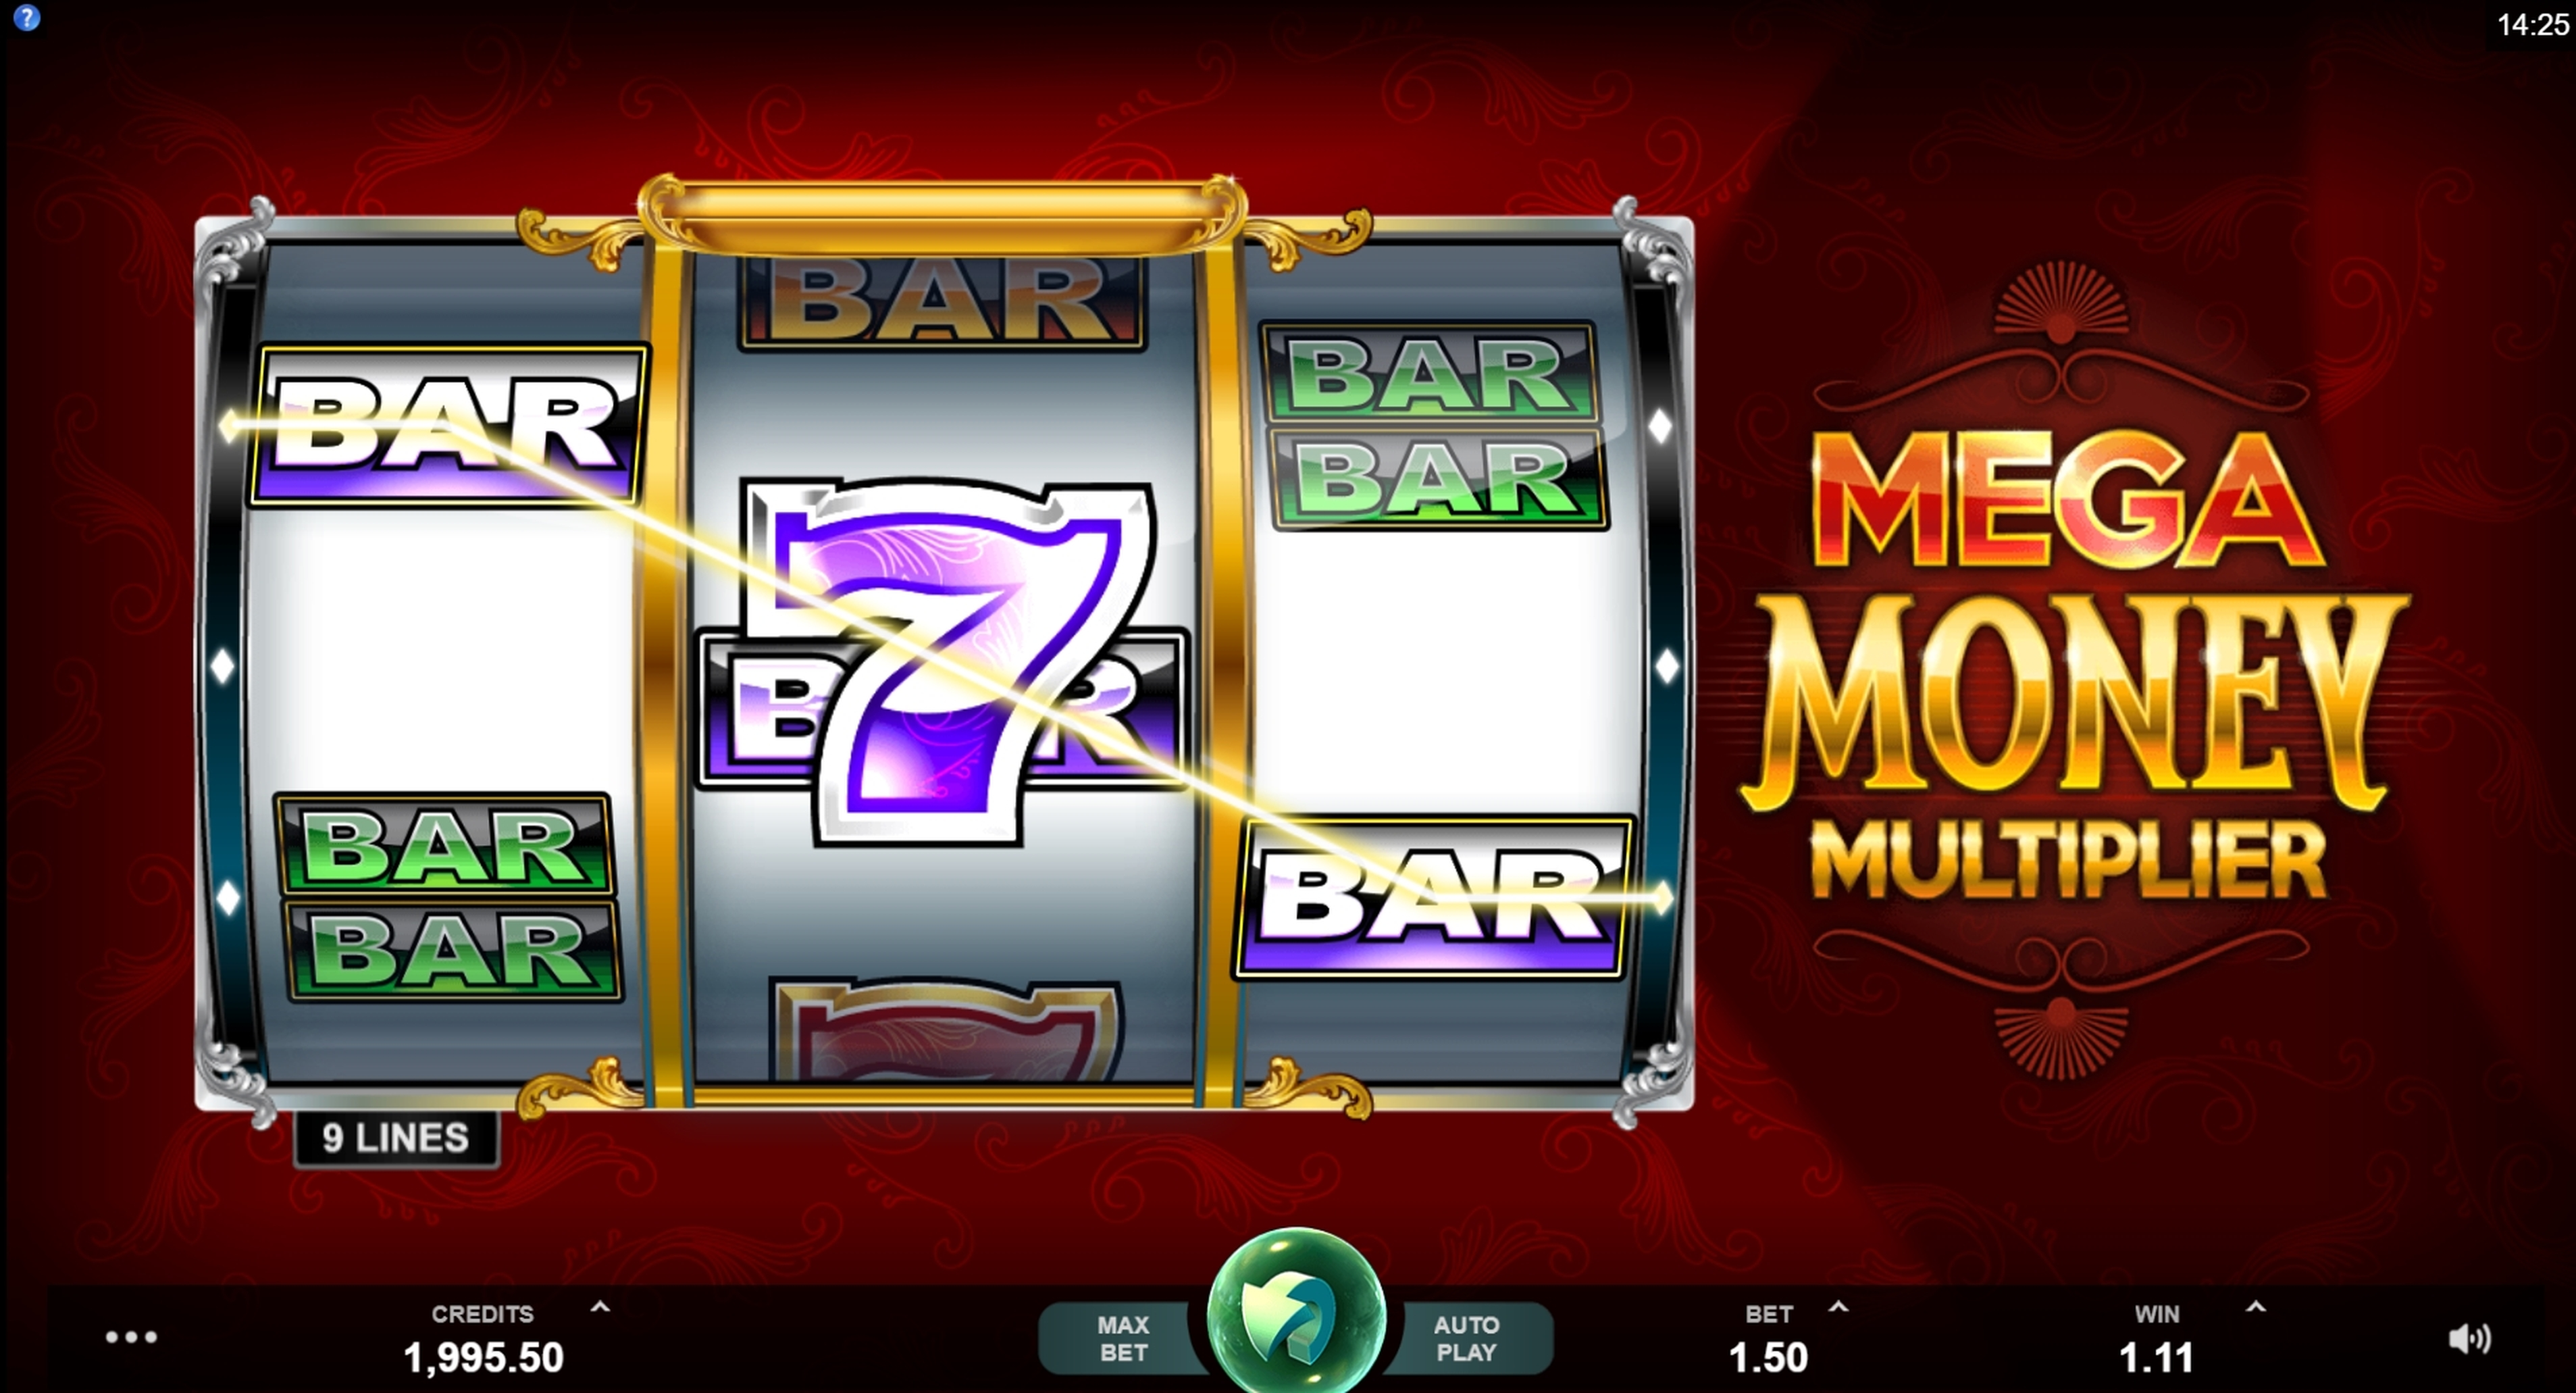 Win Money in Mega Money Multiplier Free Slot Game by MahiGaming